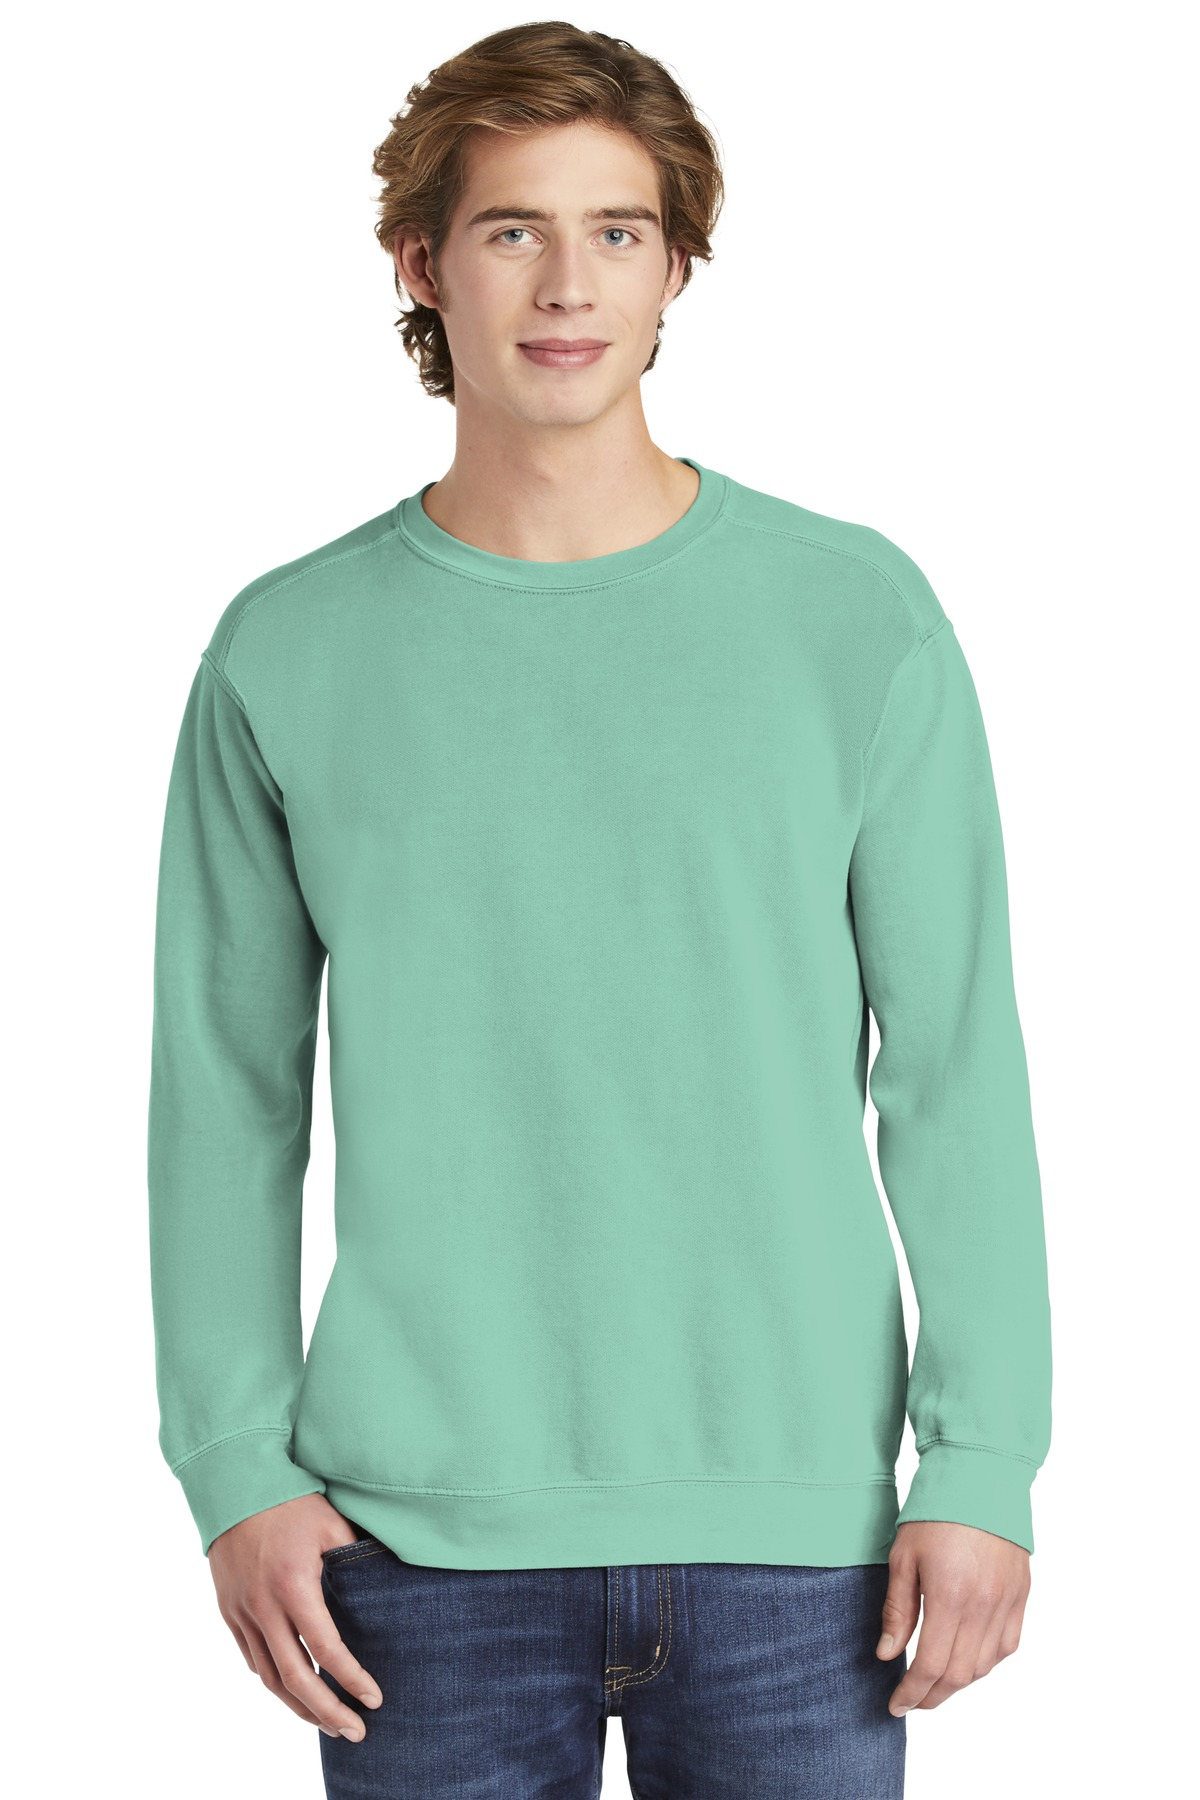 COMFORT COLORS  ®  Ring Spun Crewneck Sweatshirt. 1566 - Chalky Mint